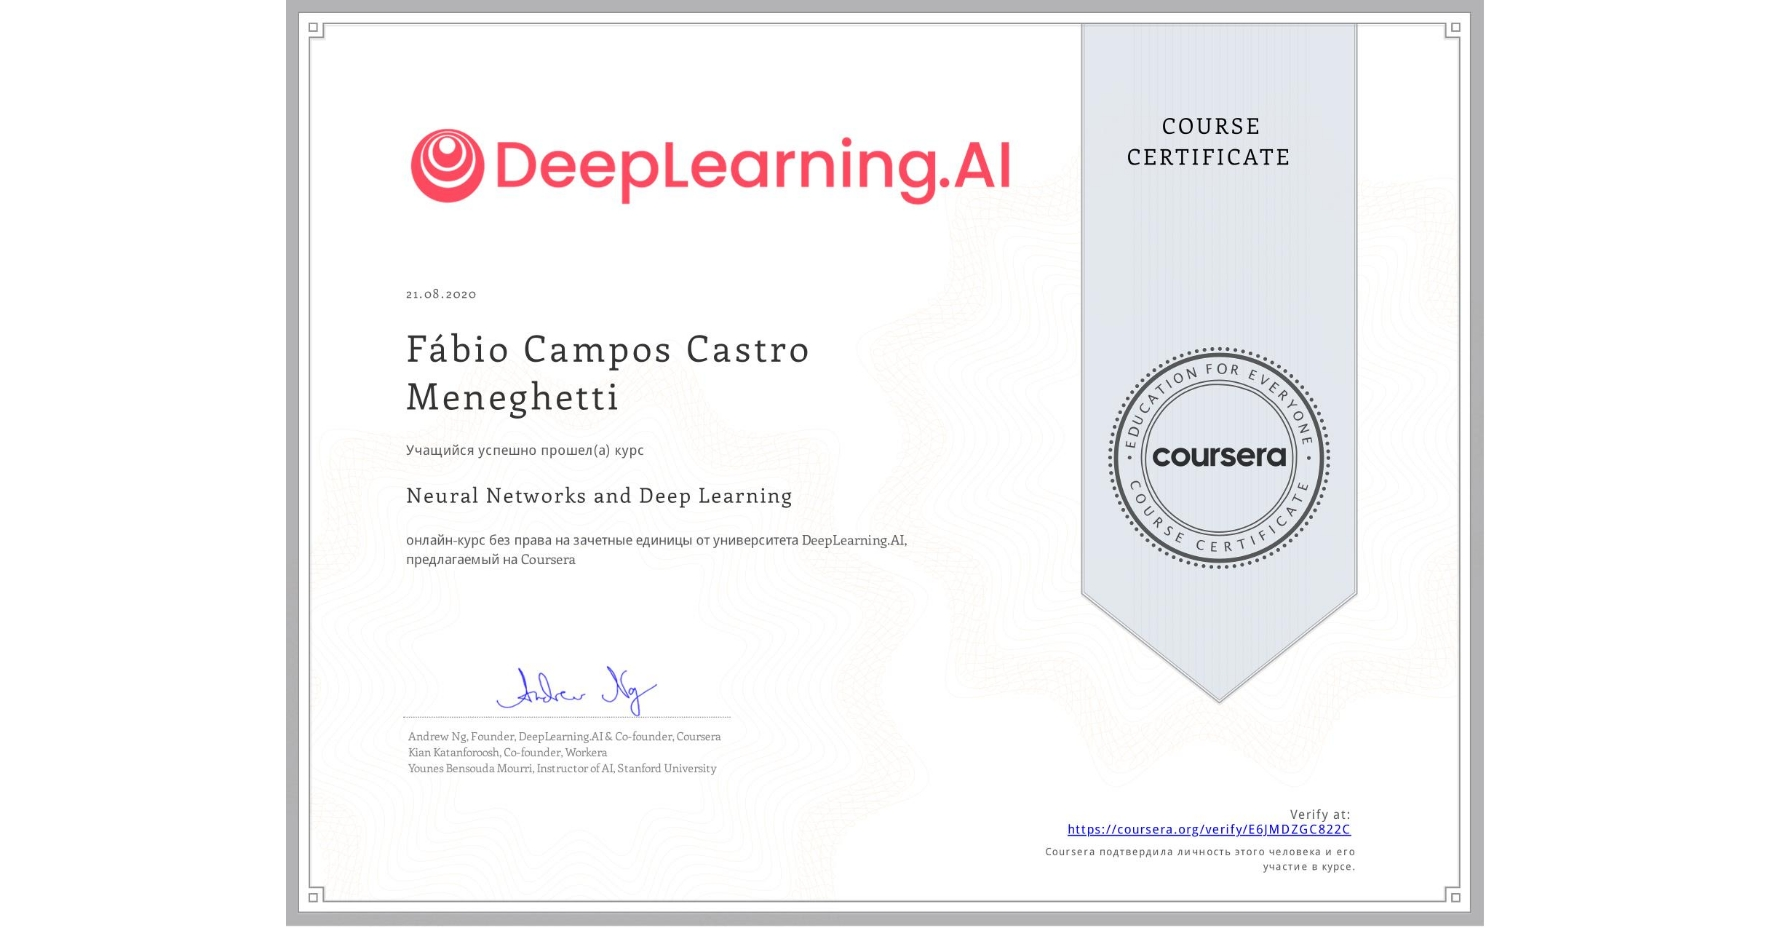 View certificate for Fábio Campos Castro Meneghetti, Neural Networks and Deep Learning, an online non-credit course authorized by DeepLearning.AI and offered through Coursera